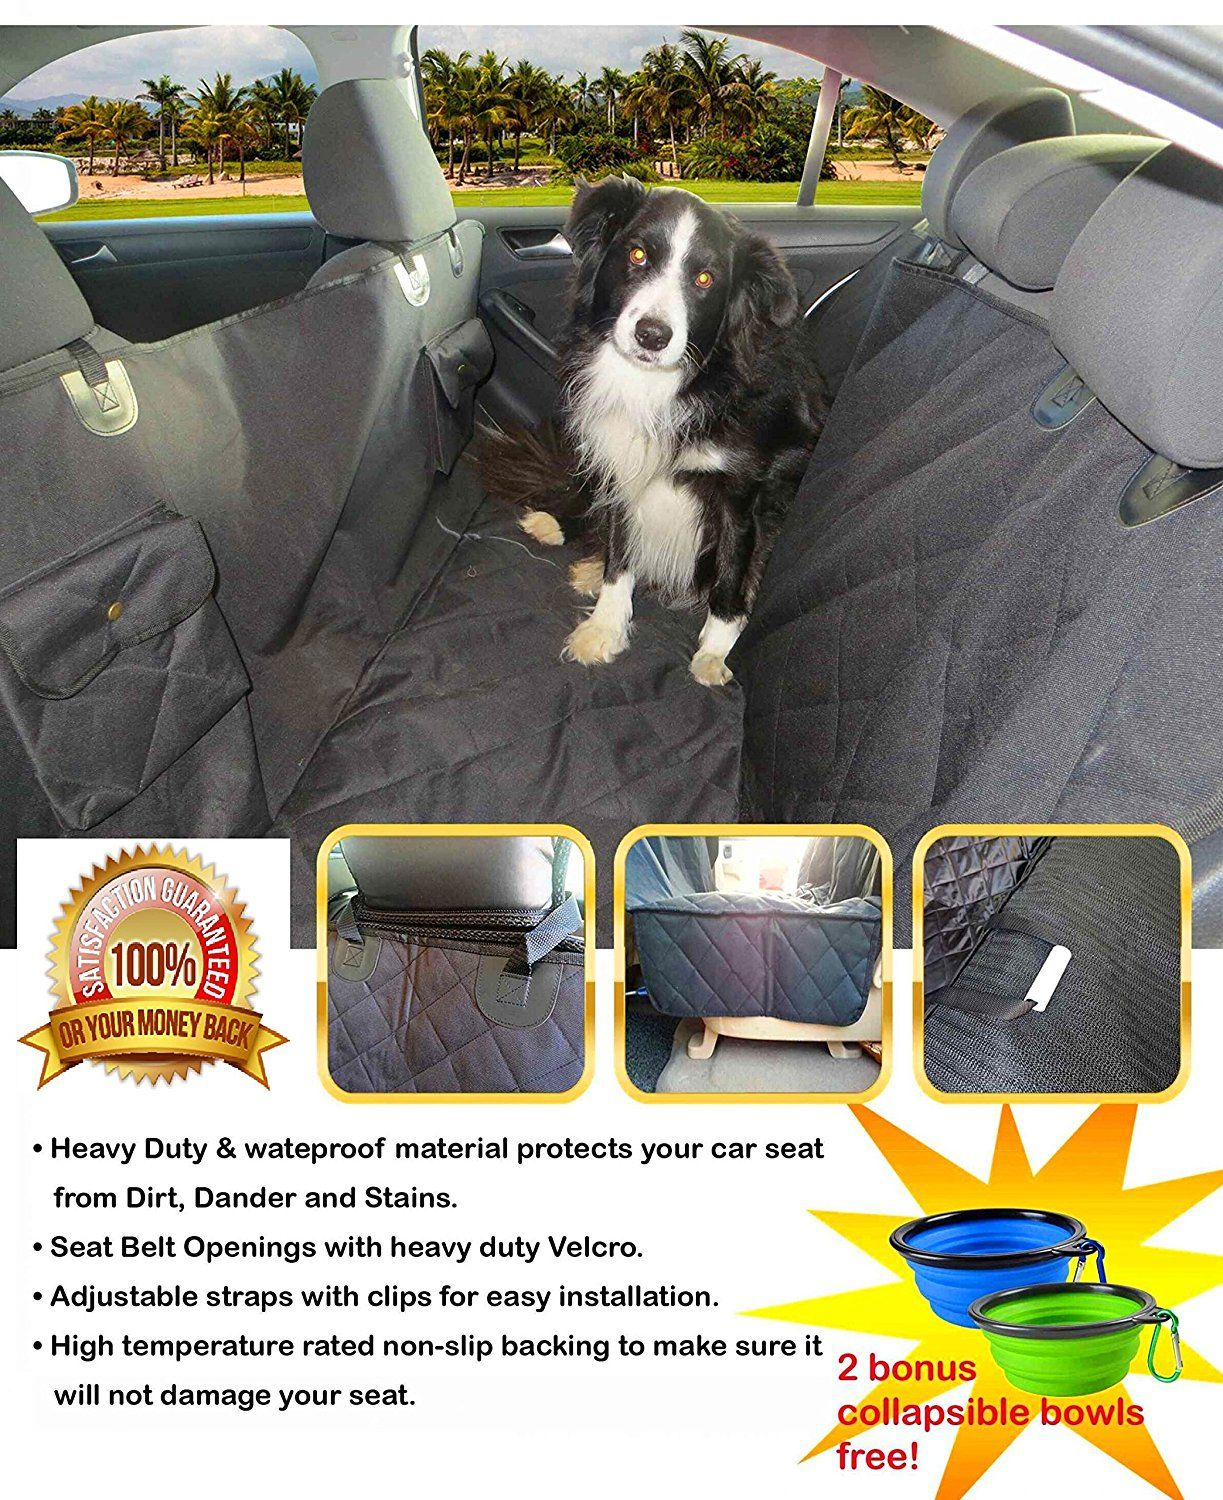 Dog Seat Covers for Cars, Trucks and Suvs. Dog Seat Cover